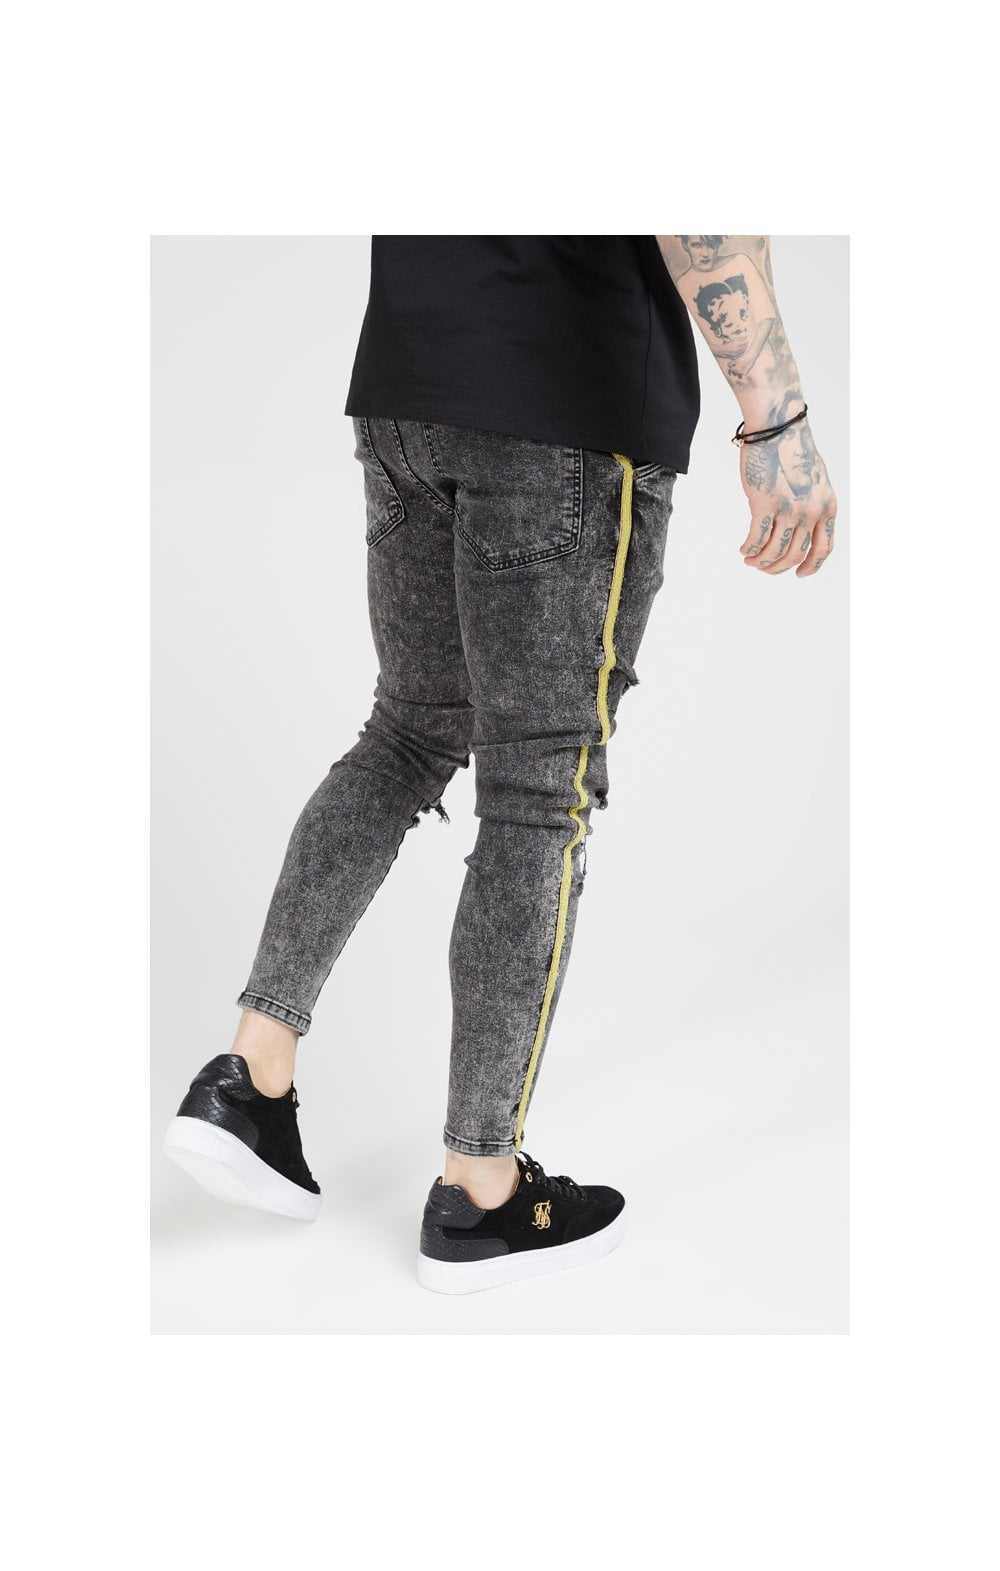 SikSilk Distressed Skinny Taped Denims - Faded Grey (2)